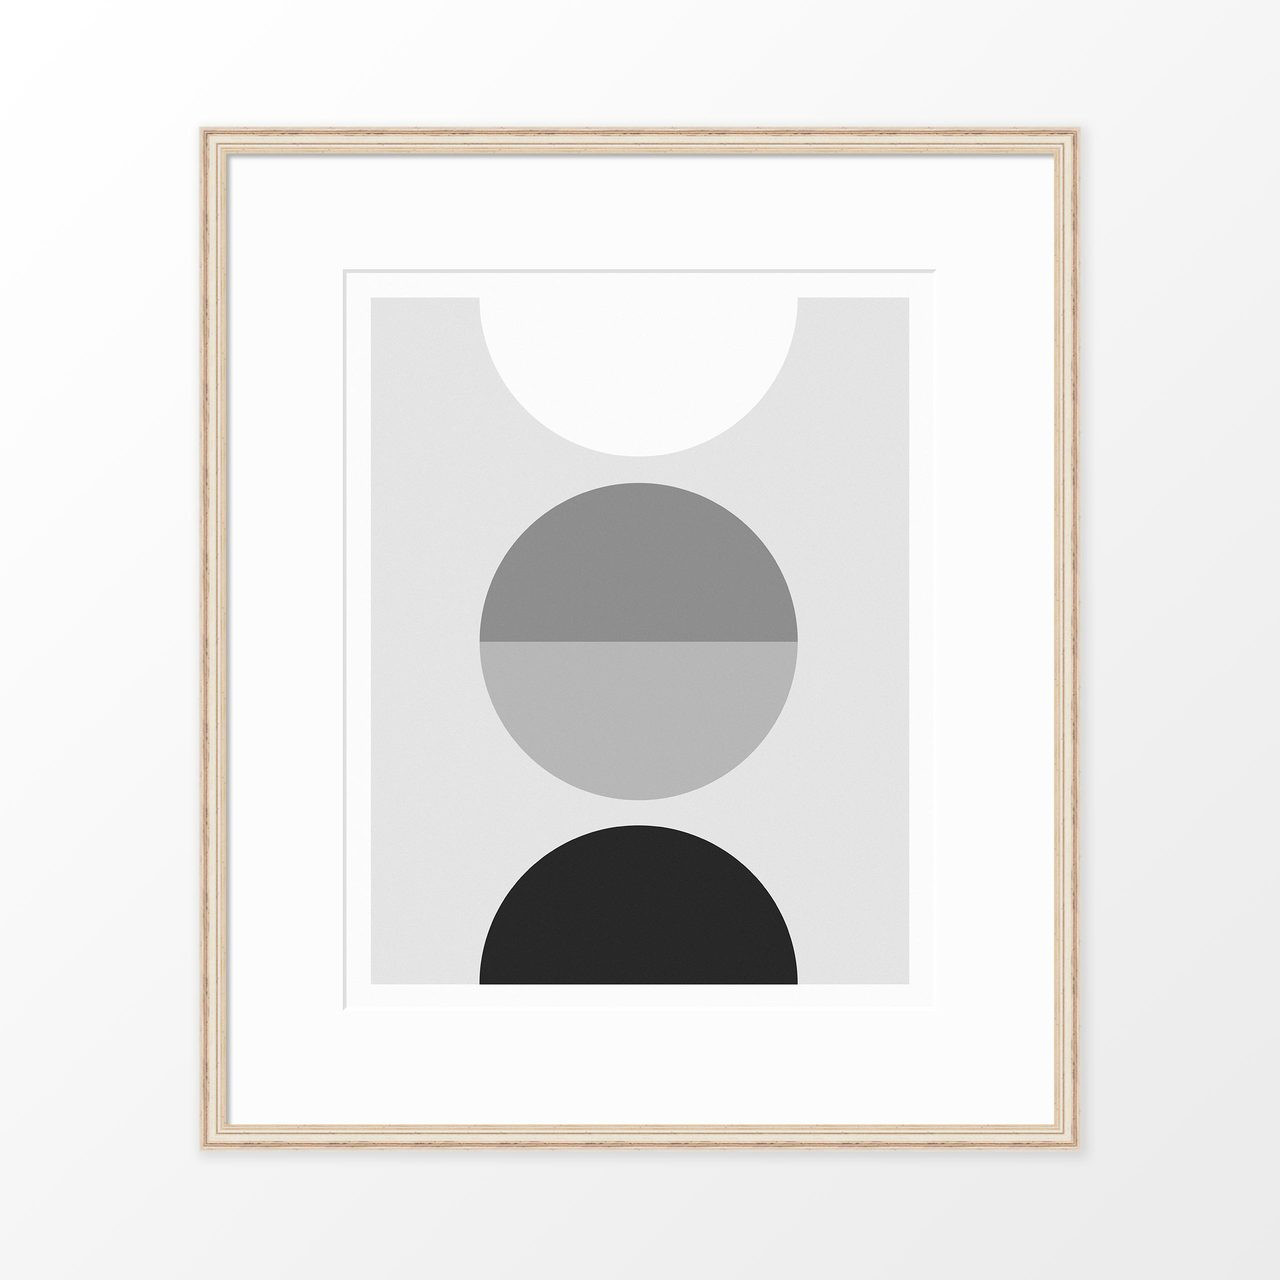 'Luna' Black and White Geometric Art Print from The Printed Home